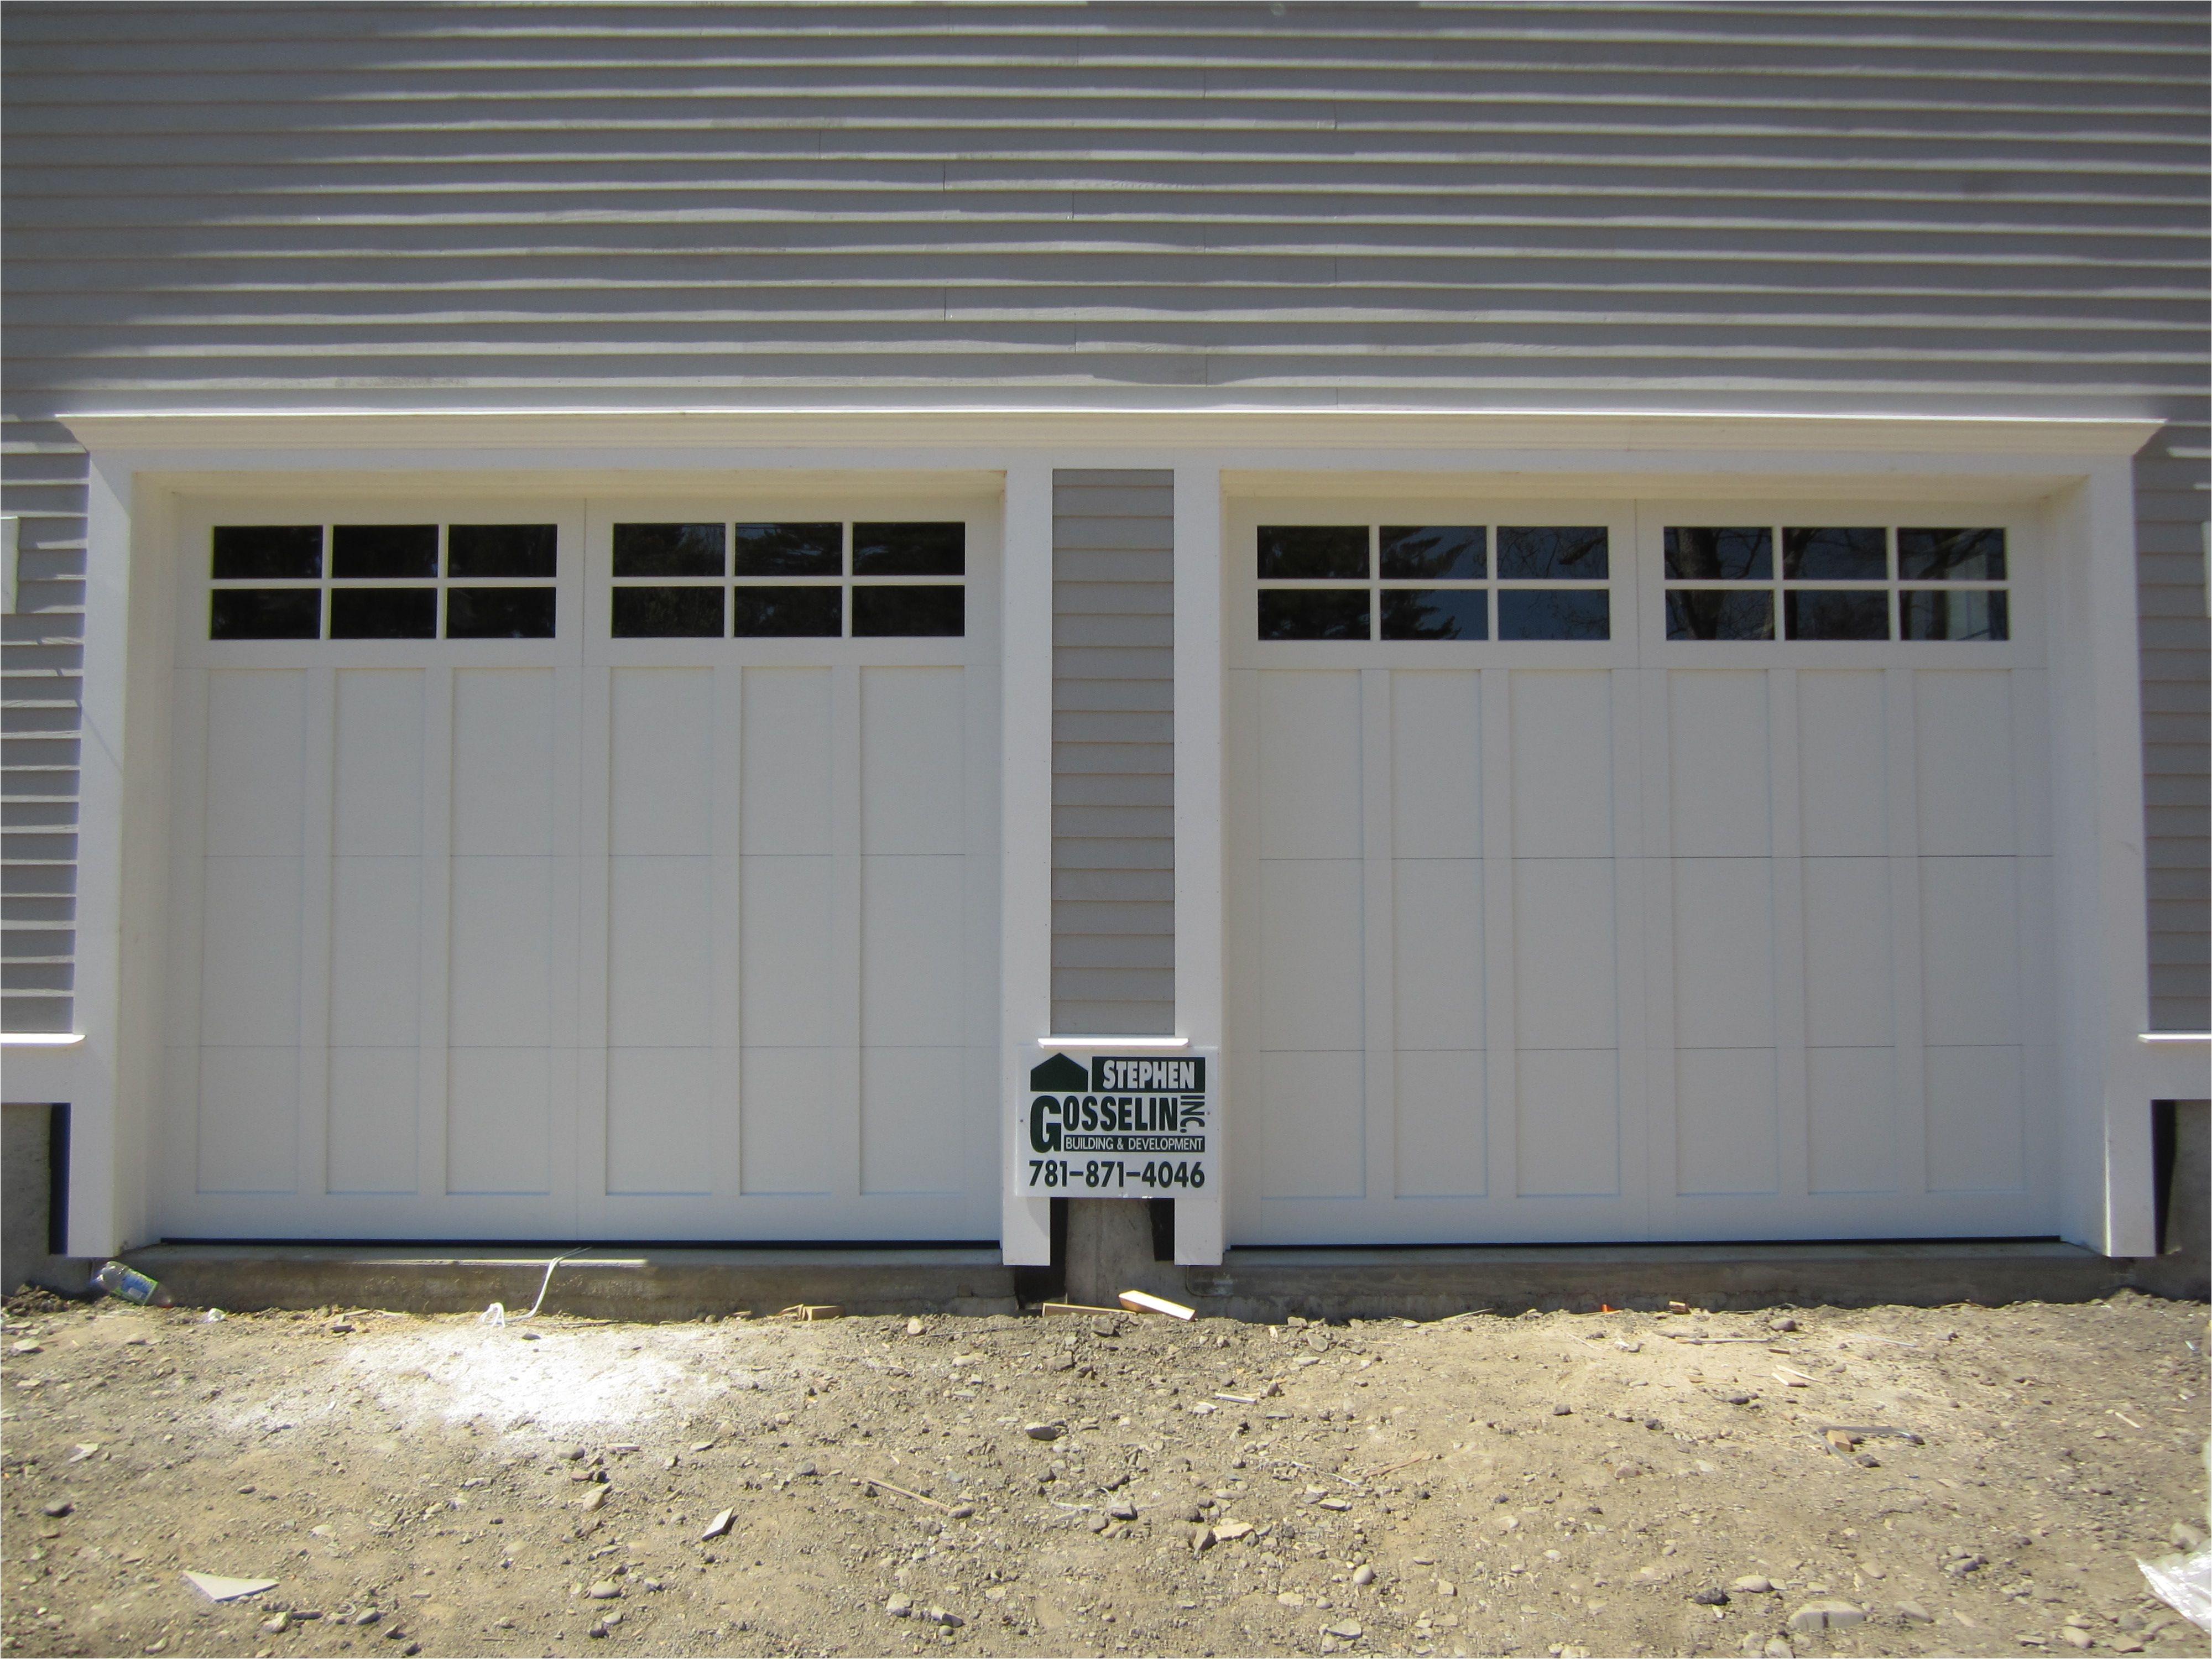 haas american tradition model 922 steel carriage house style garage doors in white with 6 pane glass installed by mortland overhead door mortlanddoor com